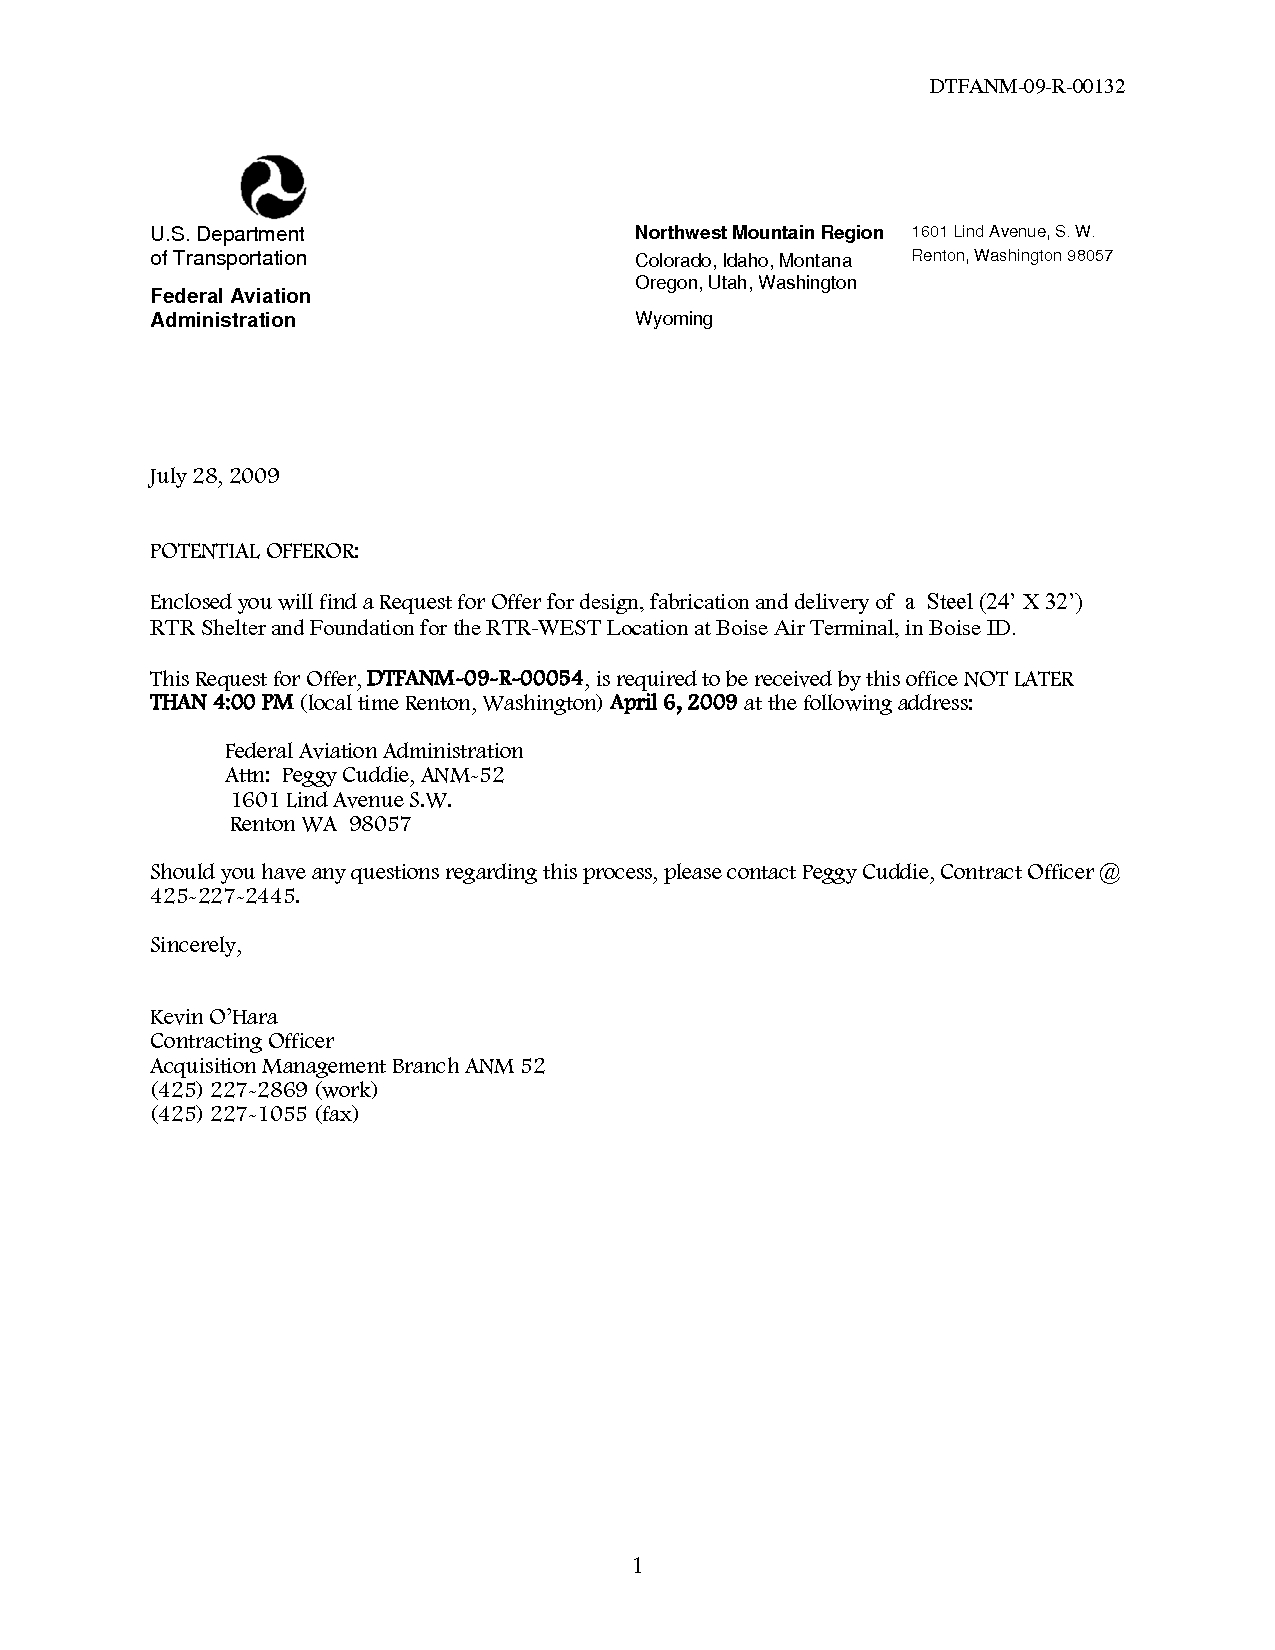 Housing Reference Letter Template - 18 Sample Reference Letter From Employer